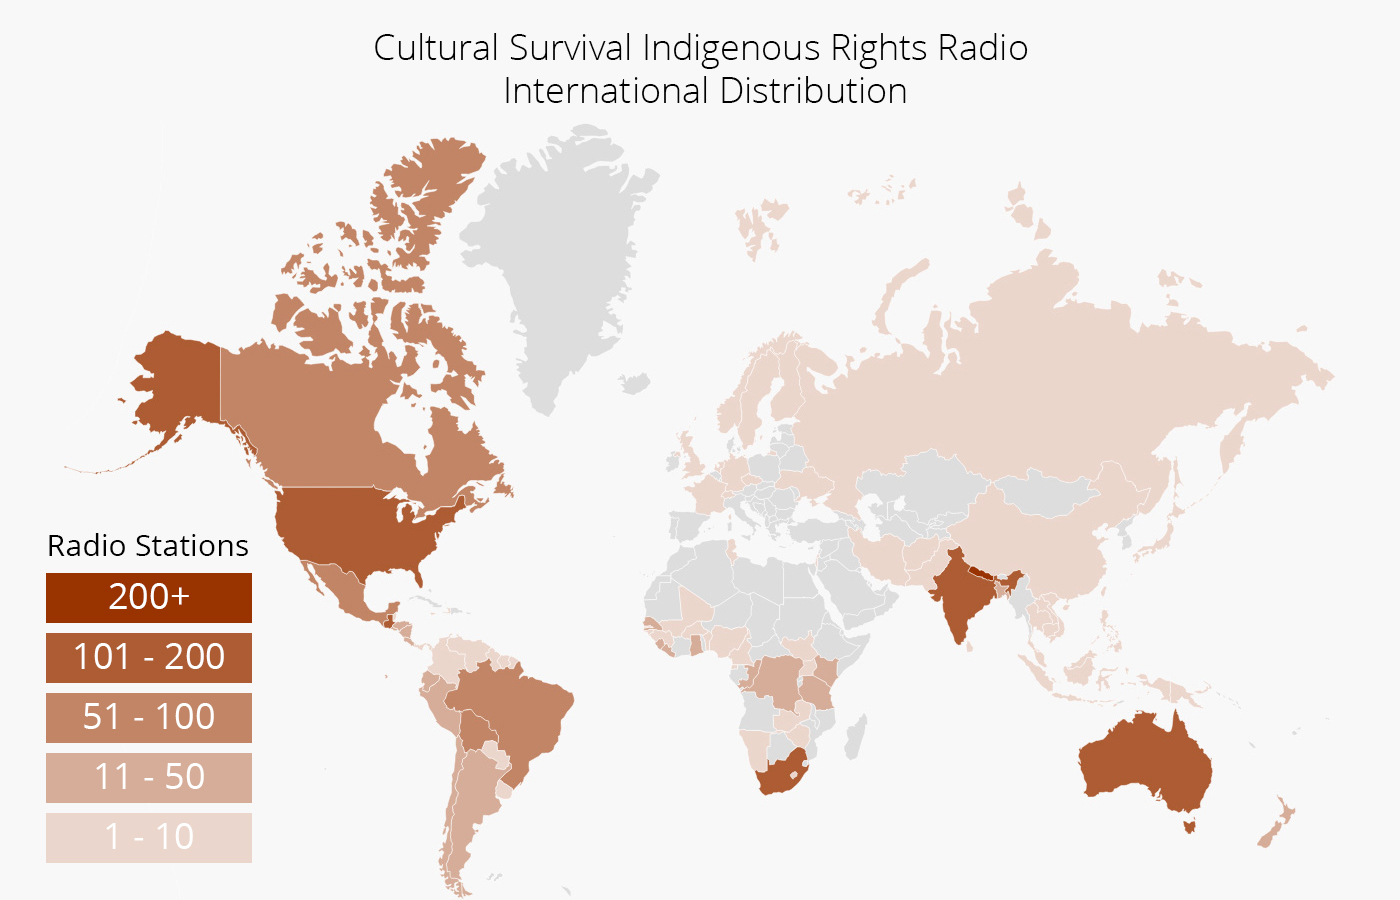 World map depicting the distribution of Cultural Survival's Indigenous Rights Radio programs around the globe. Areas such as the United States, Australia, India, South Africa, and parts of South America are highlighted as having the most radio stations.